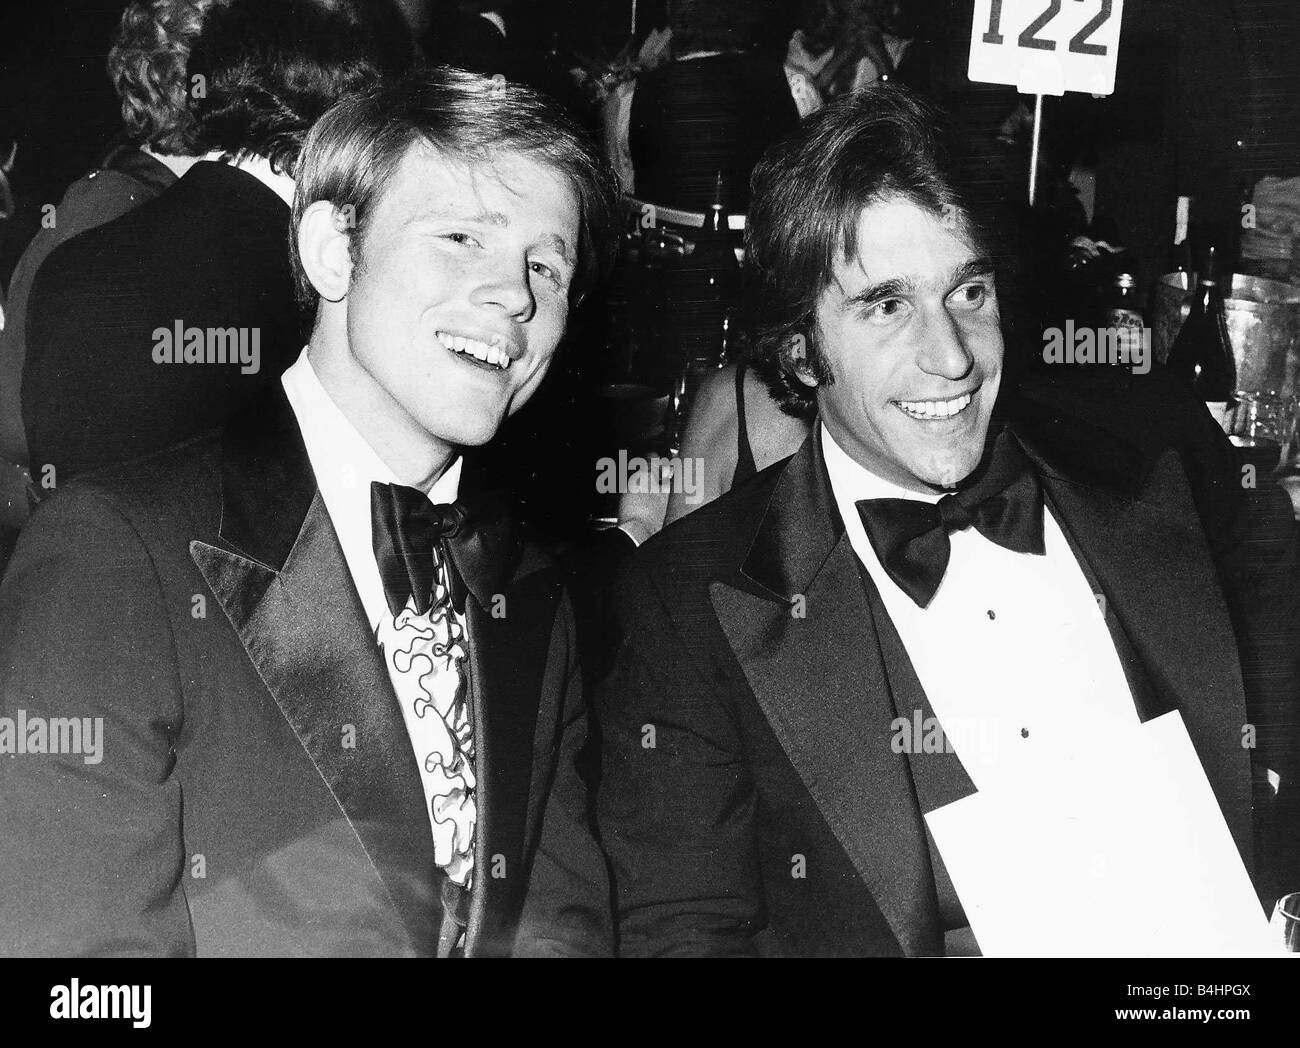 Actor Ron Howard with fellow actor Henry Winkler from the US TV series Happy Days pictured at a recent American - Stock Image